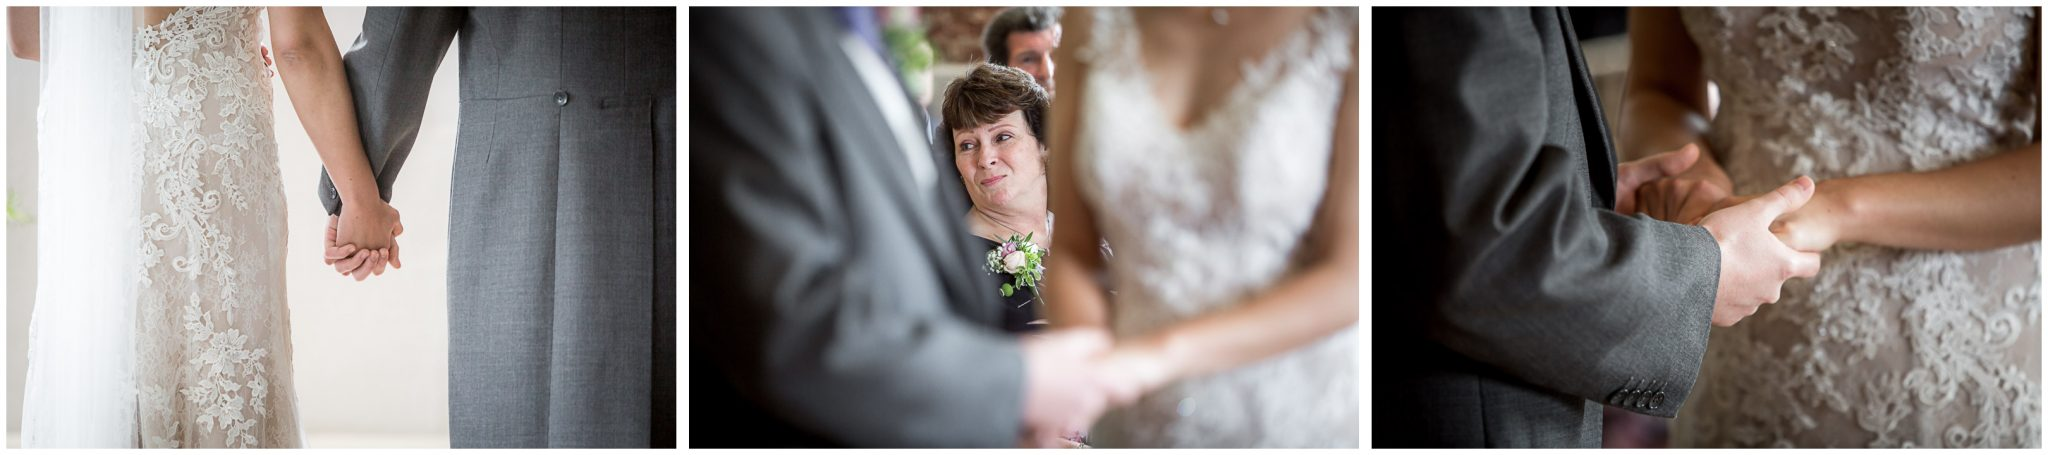 Sopley Mill wedding photography holding hands during ceremony